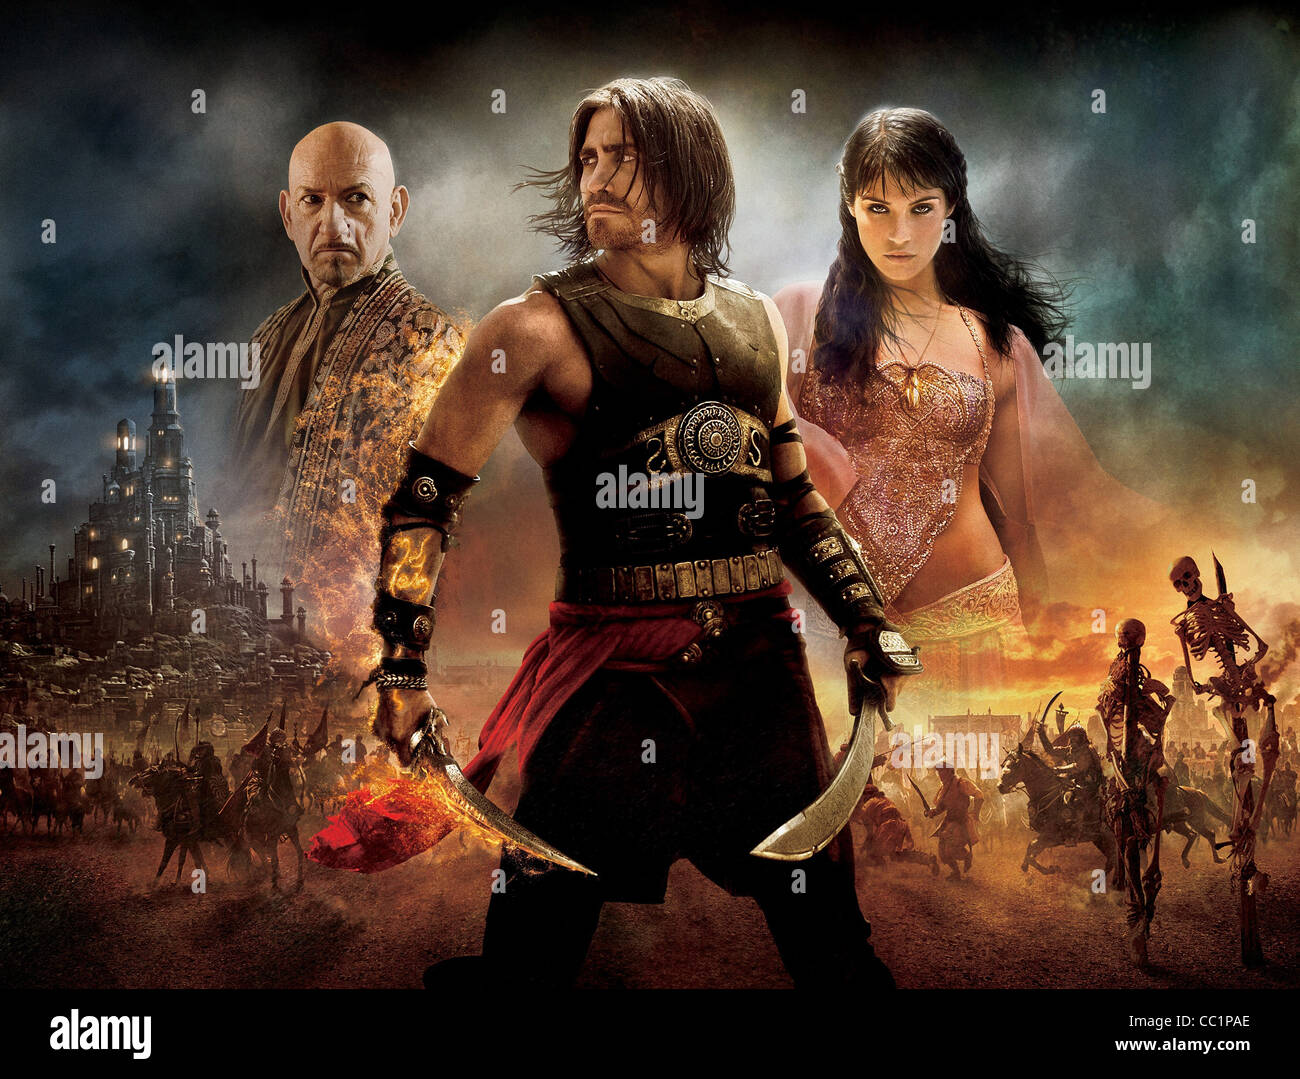 Ben Kingsley Jake Gyllenhaal Gemma Arterton Prince Of Persia The Stock Photo Alamy